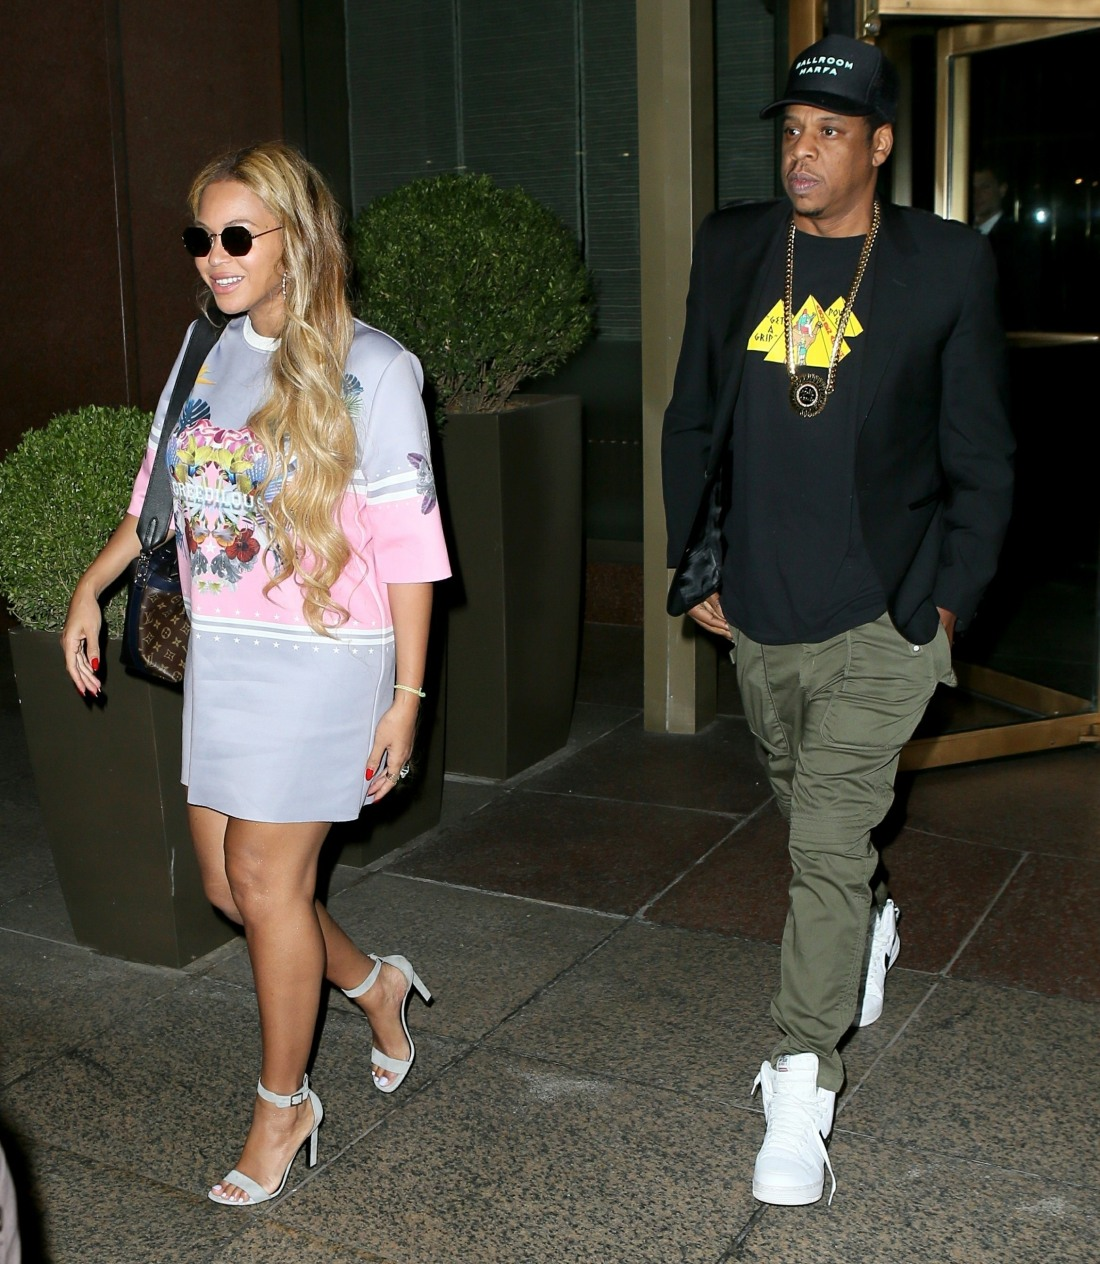 Beyonce and Jay Z head to Radio City Music Hall for Solange's concert